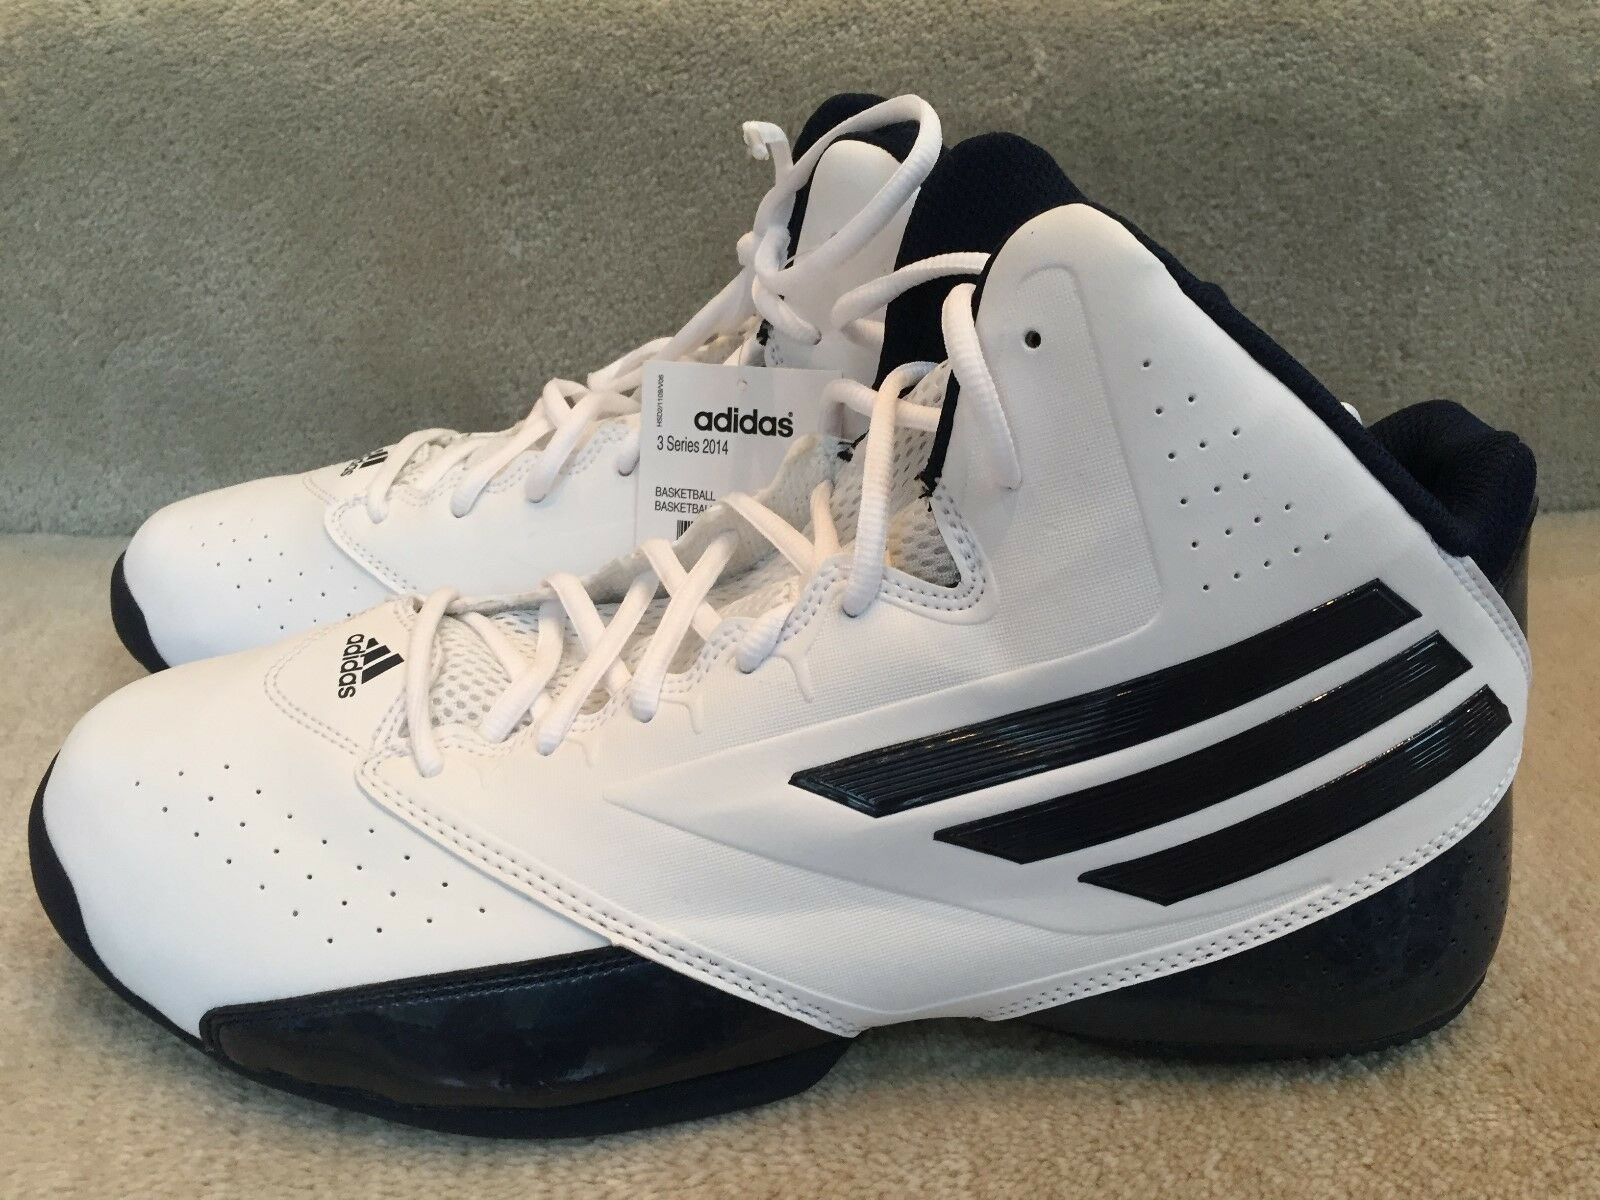 ADIDAS 3 SERIES 2014 WHITE BLACK SIZE 12 NEW WITH BOX